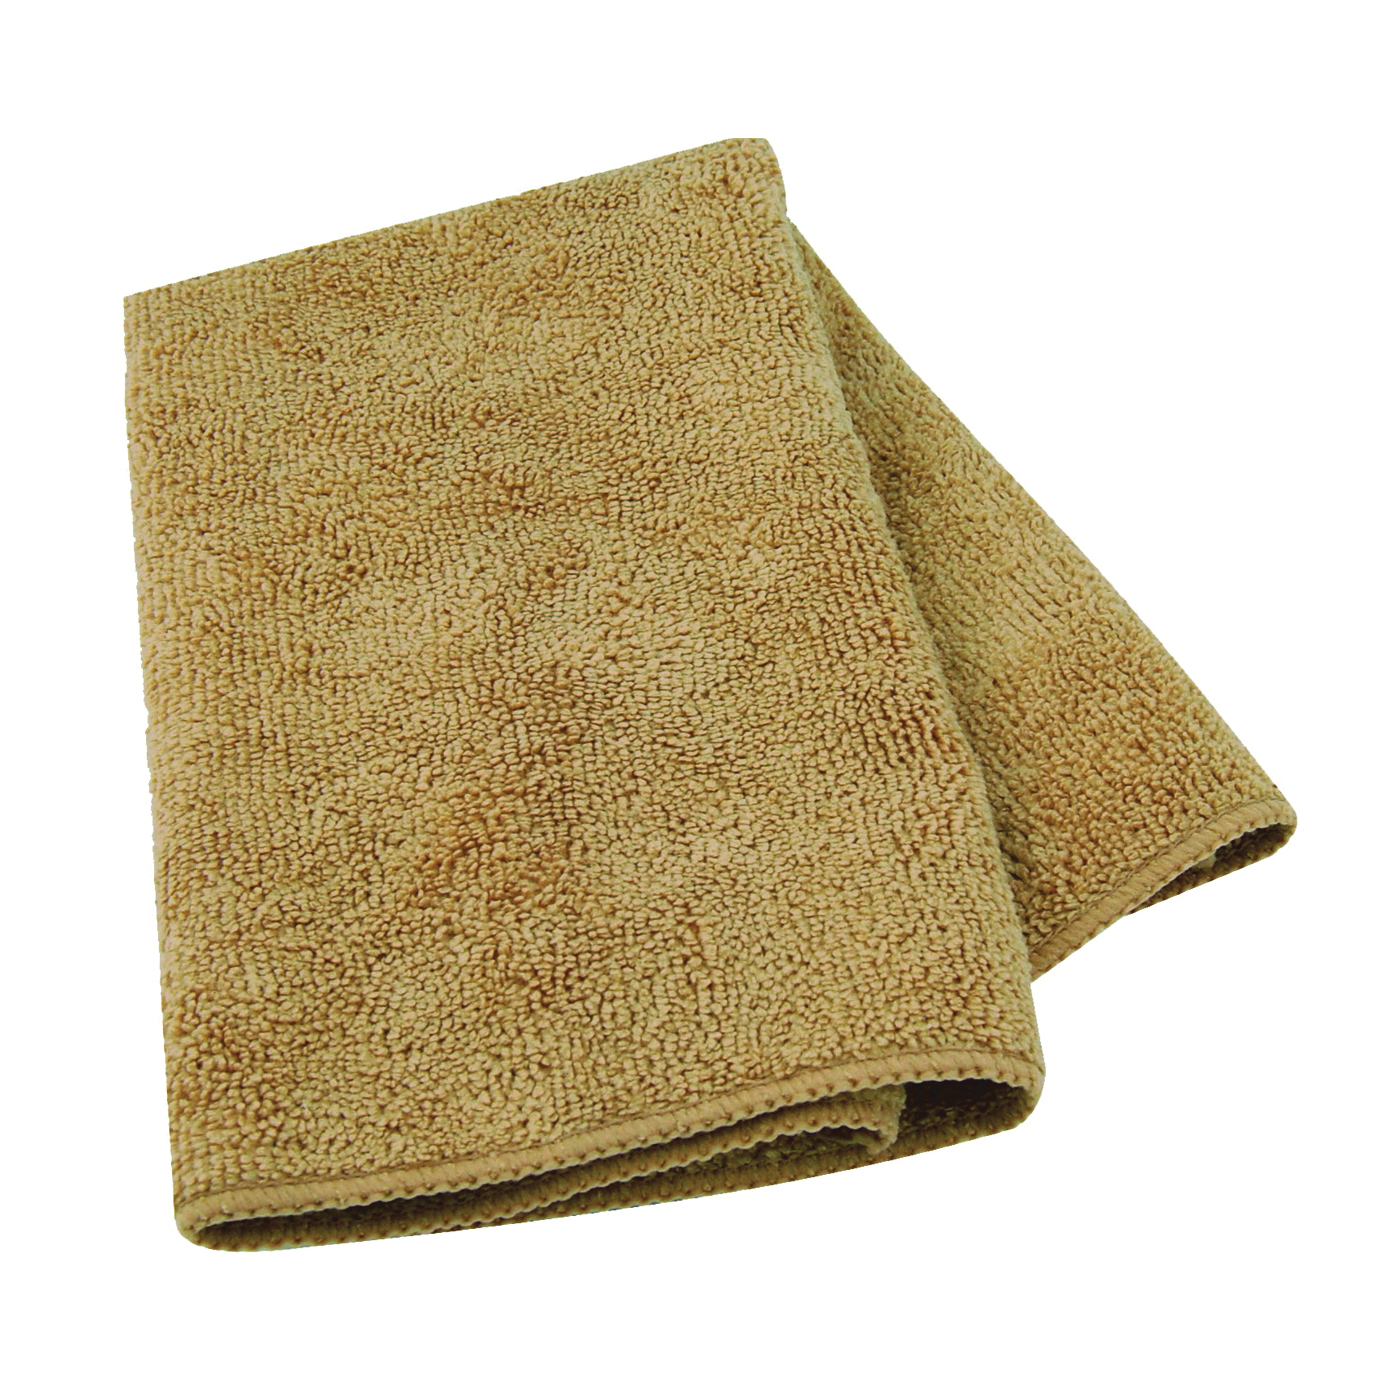 Picture of Quickie 474-6/36 Dusting and Polishing Cloth, 15 in L, 13 in W, Microfiber Cloth